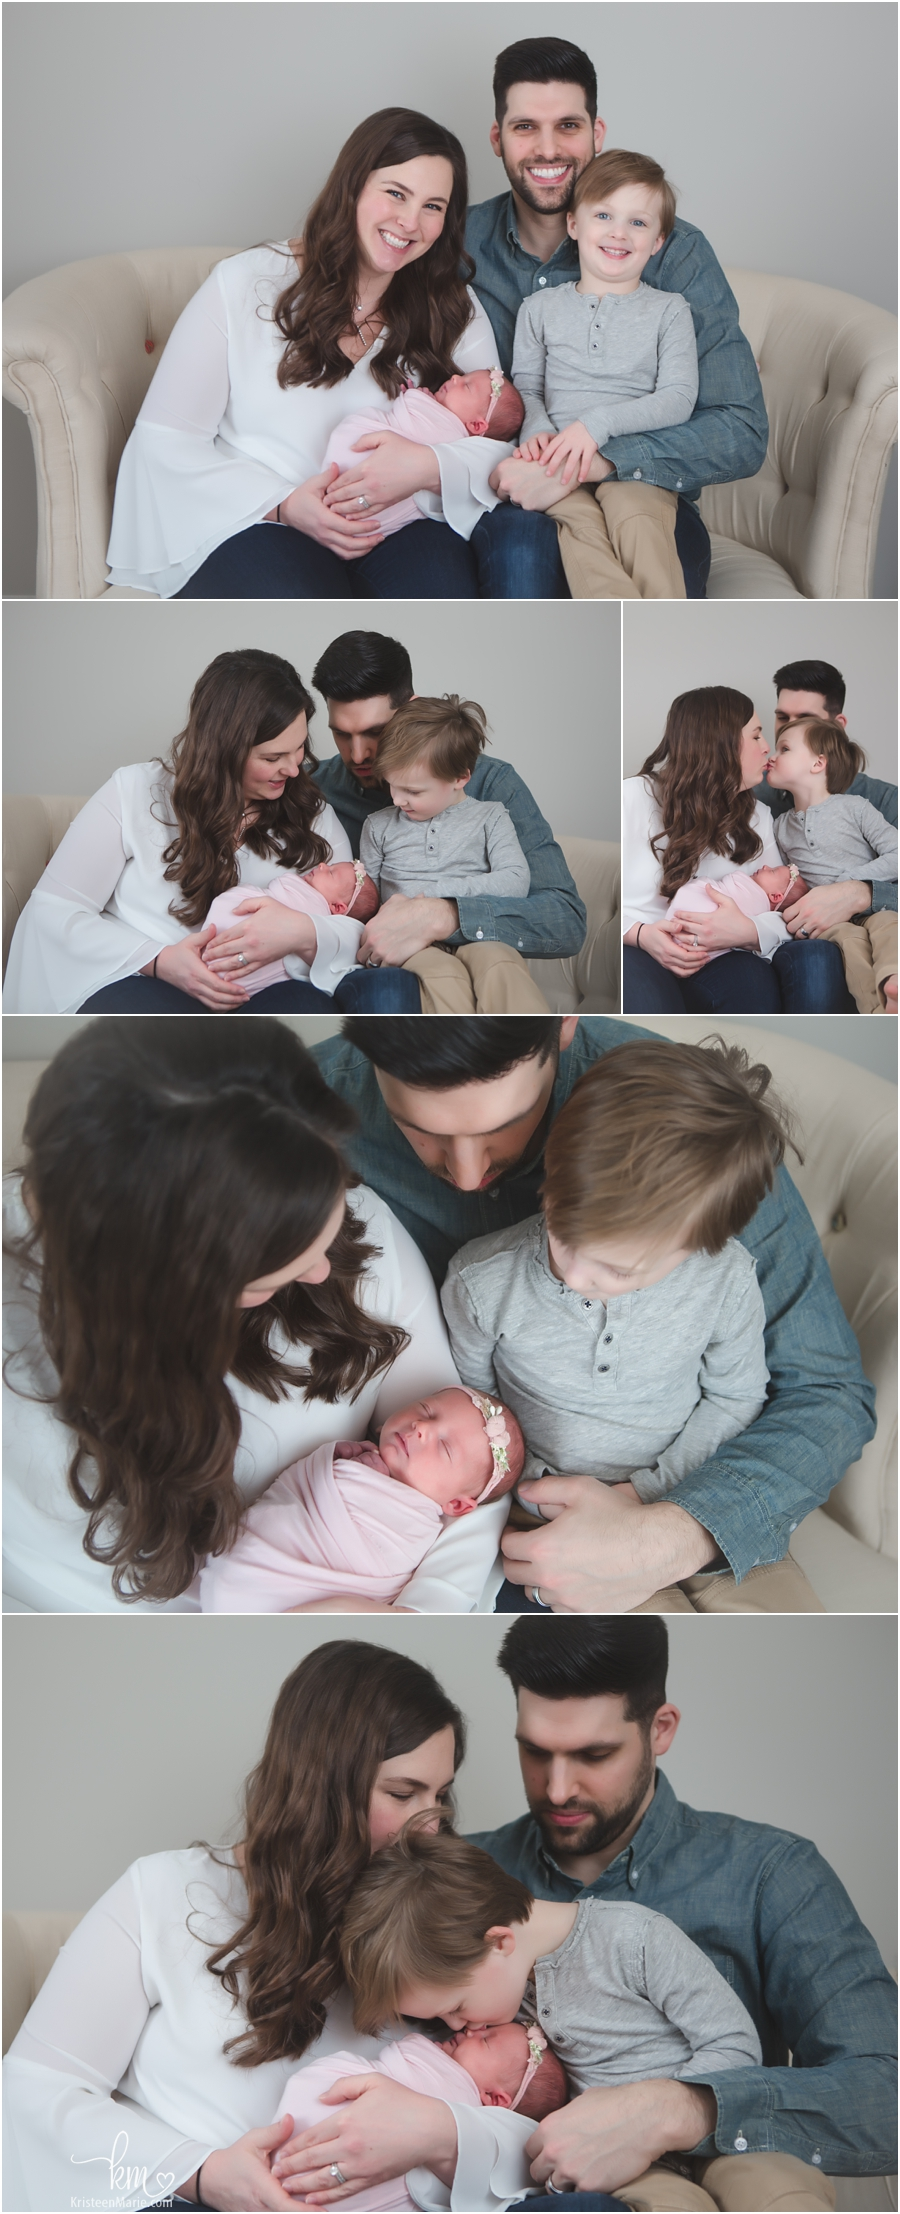 family poses with newborn baby - Westfield photography studio